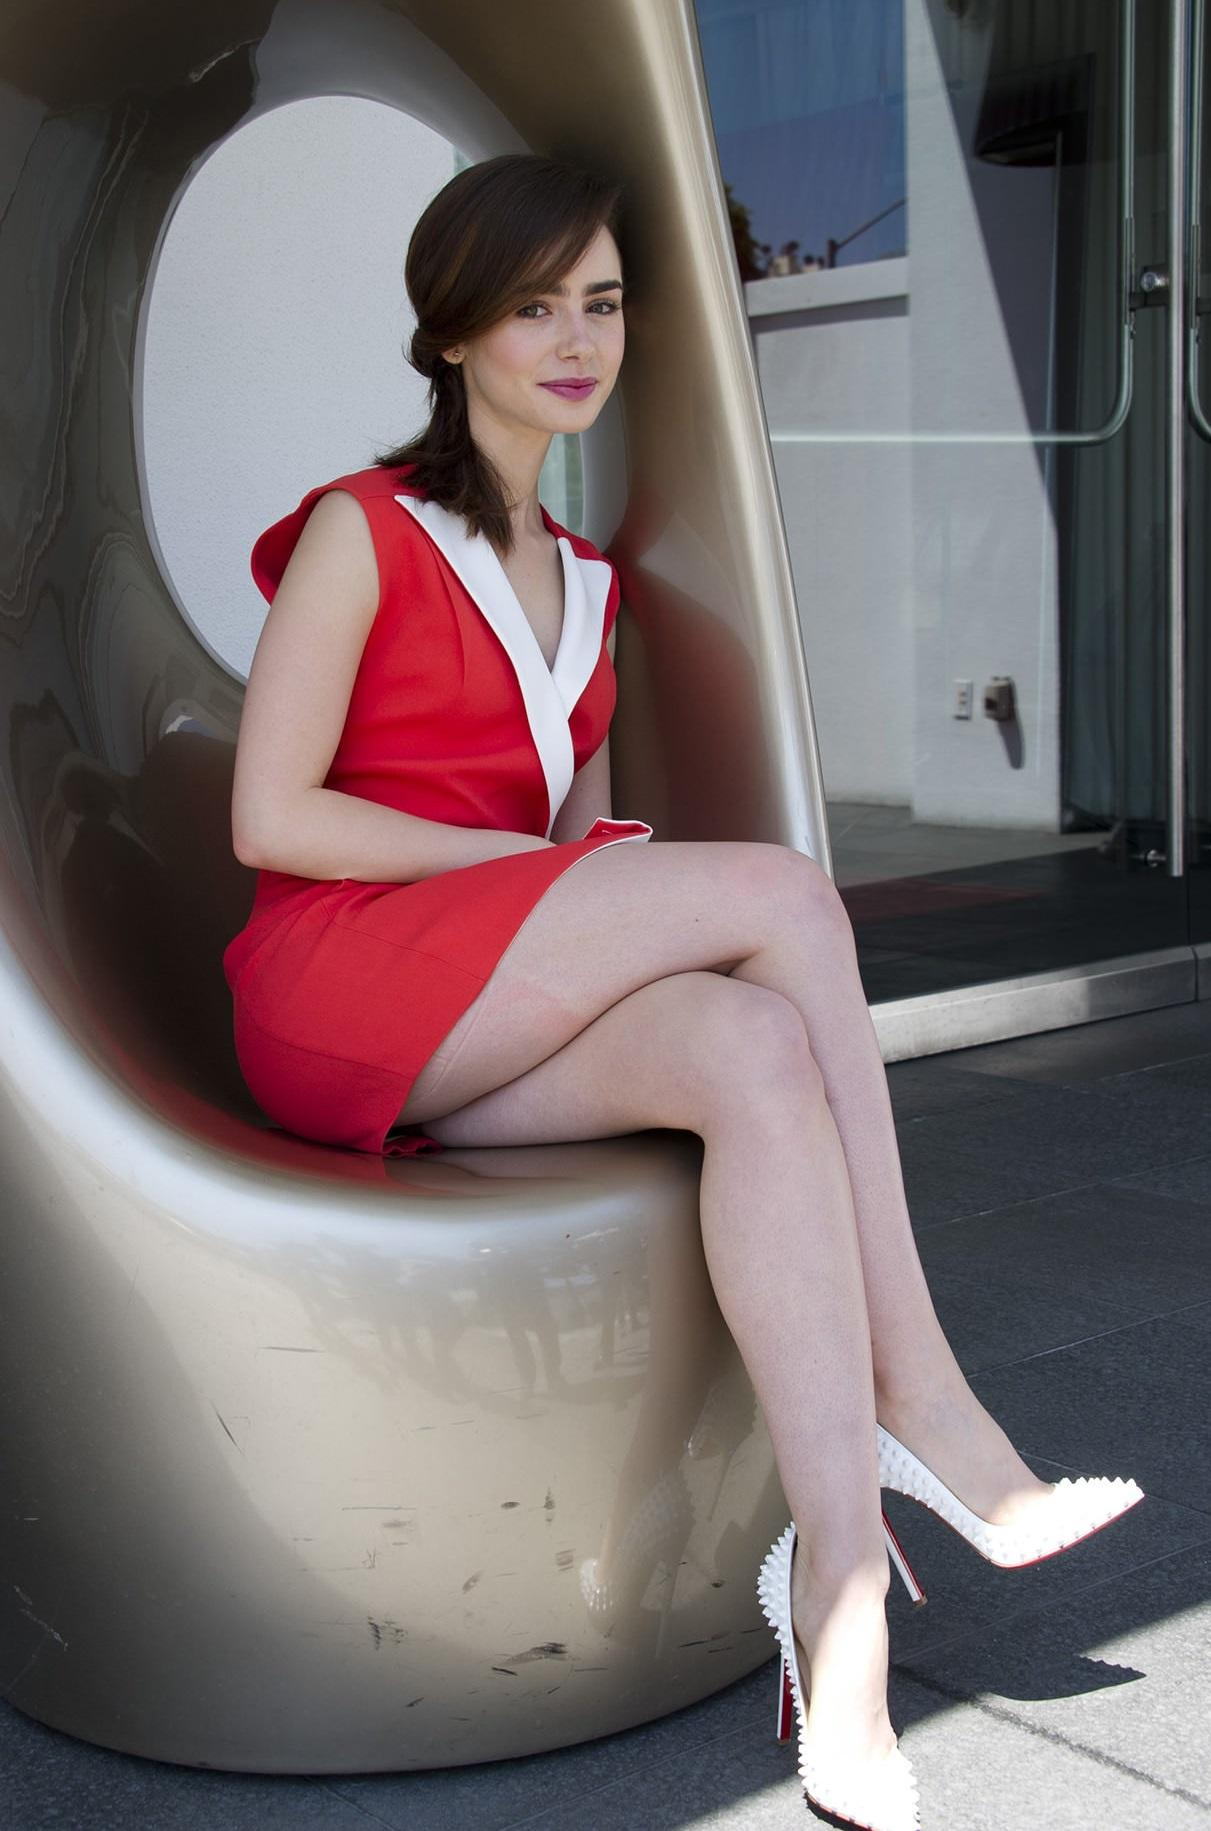 Lily Collins - Lily Collins Hot Legs, Hd Wallpapers ...